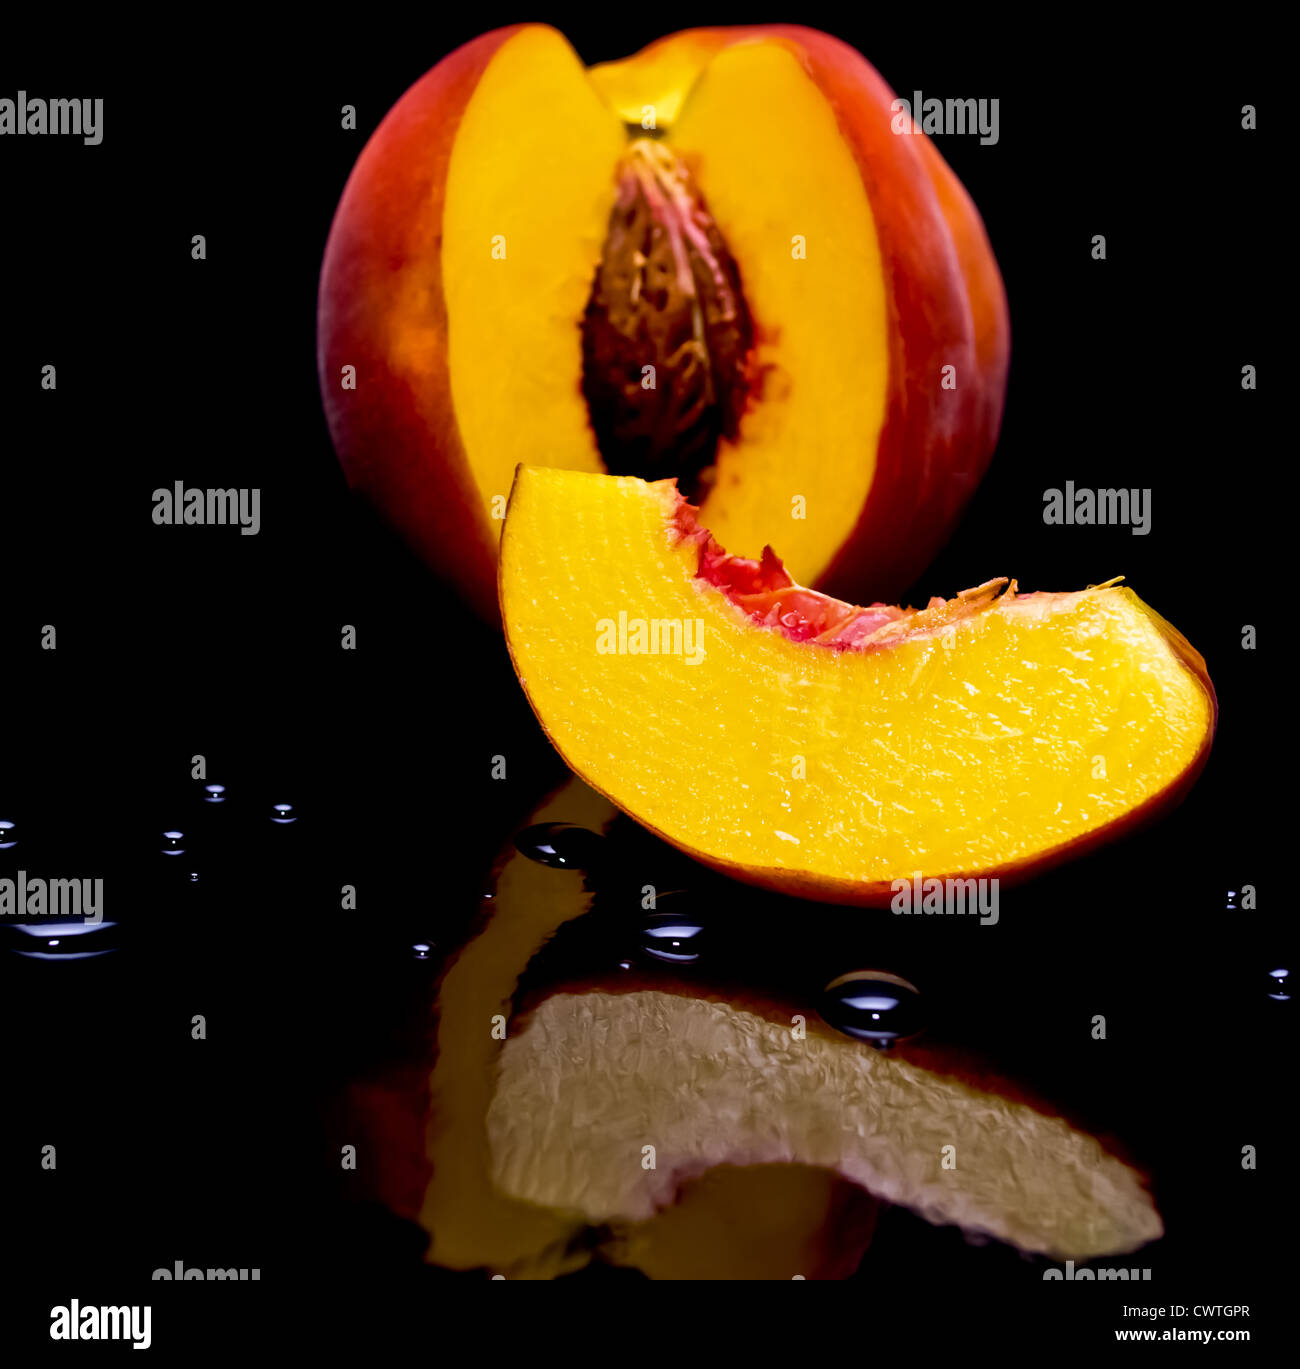 peach shot against black background with water drops and reflection stock photo alamy https www alamy com stock photo peach shot against black background with water drops and reflection 50327167 html